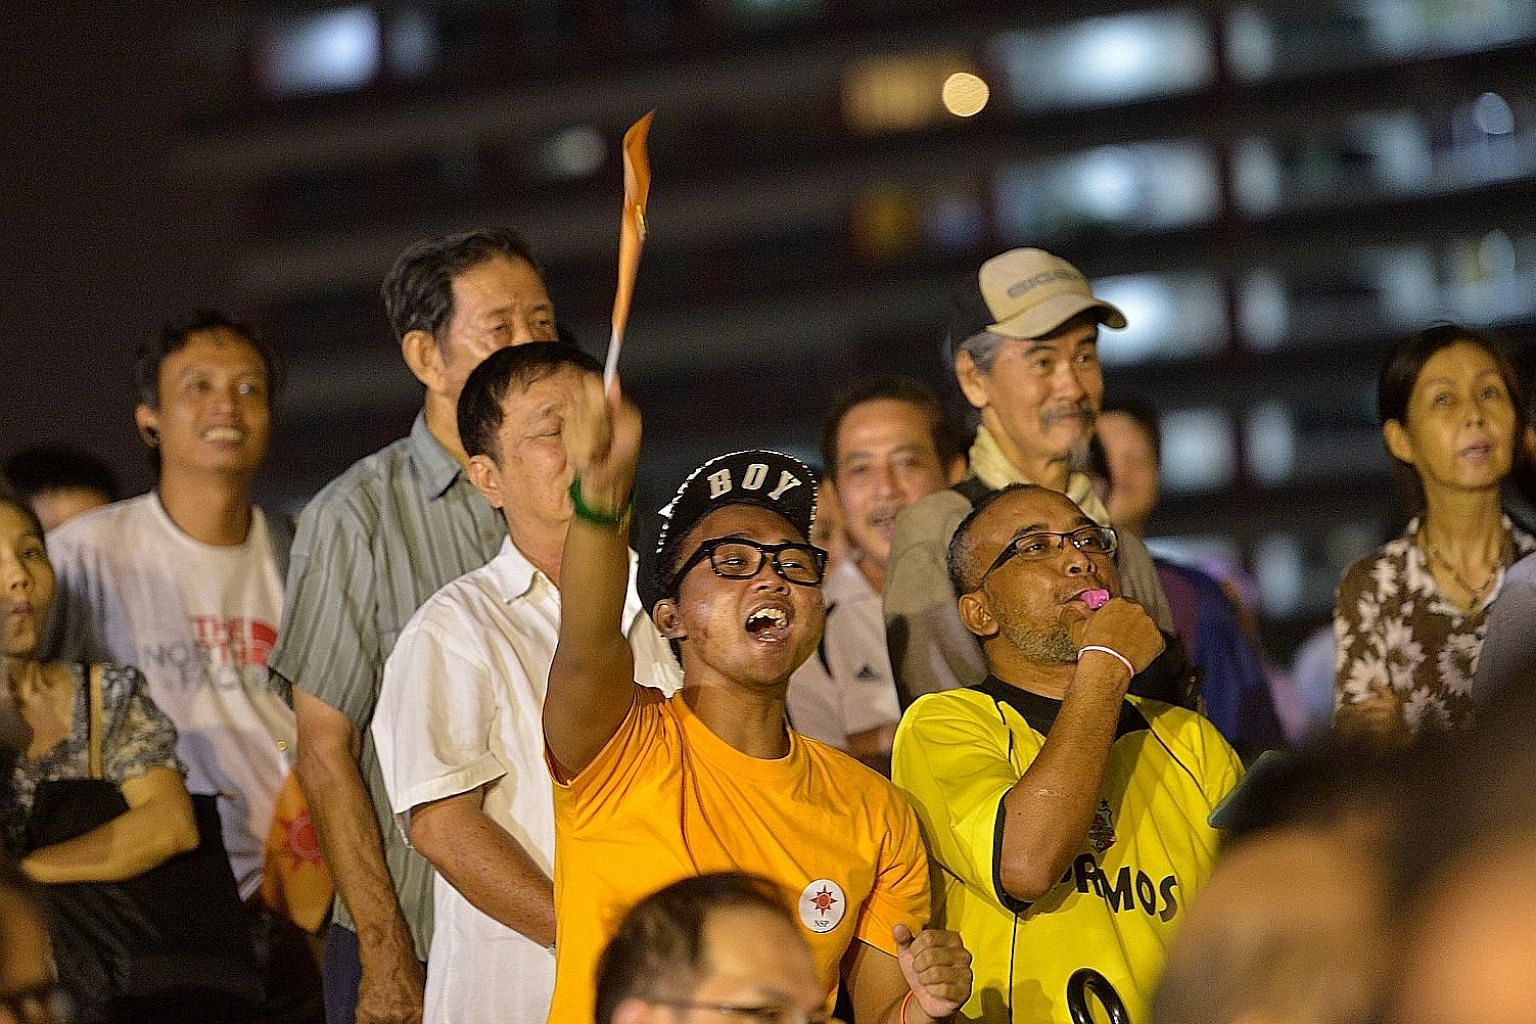 Spectators at the National Solidarity Party rally in Tampines last Saturday. The writer met various folks there, from rally-hoppers to dyed-in-the-wool opposition supporters.